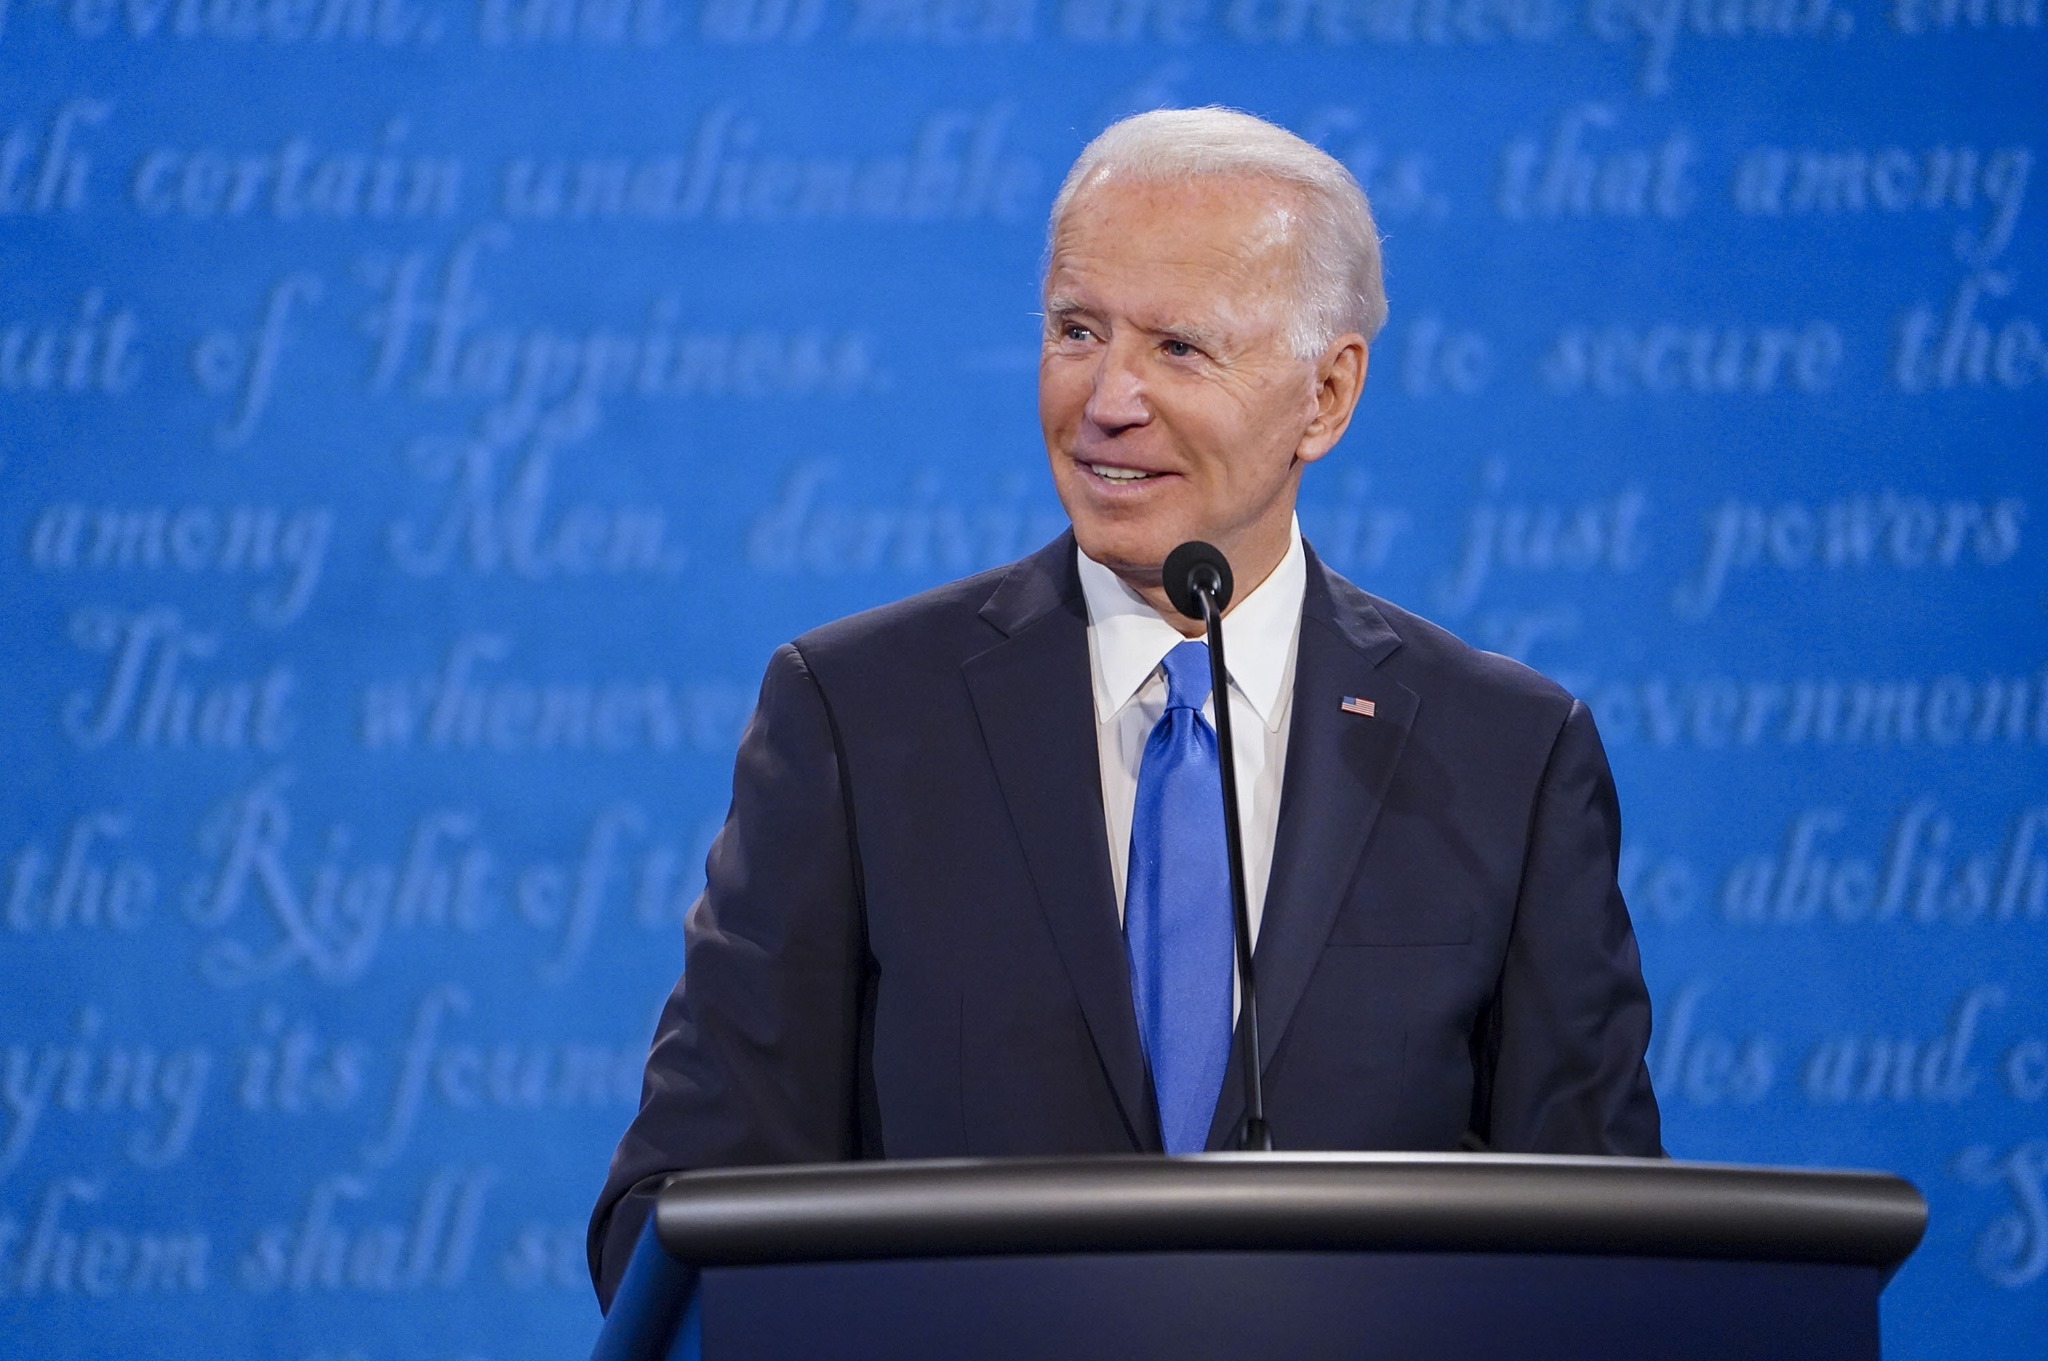 US gun violence int'l embarrassment: Biden